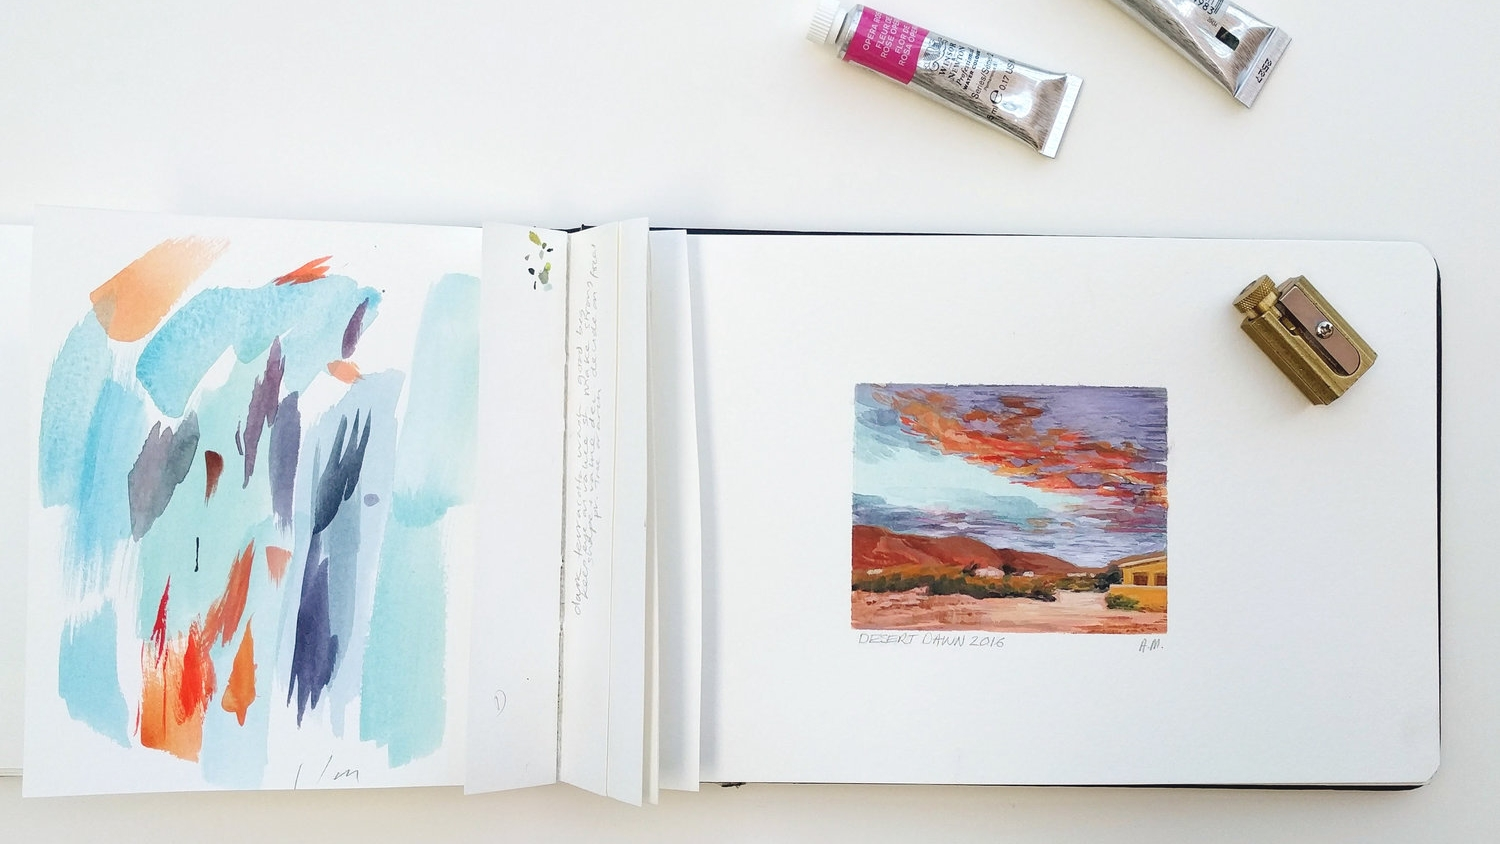 Miniature plein air watercolour painting of sunrise over the desert